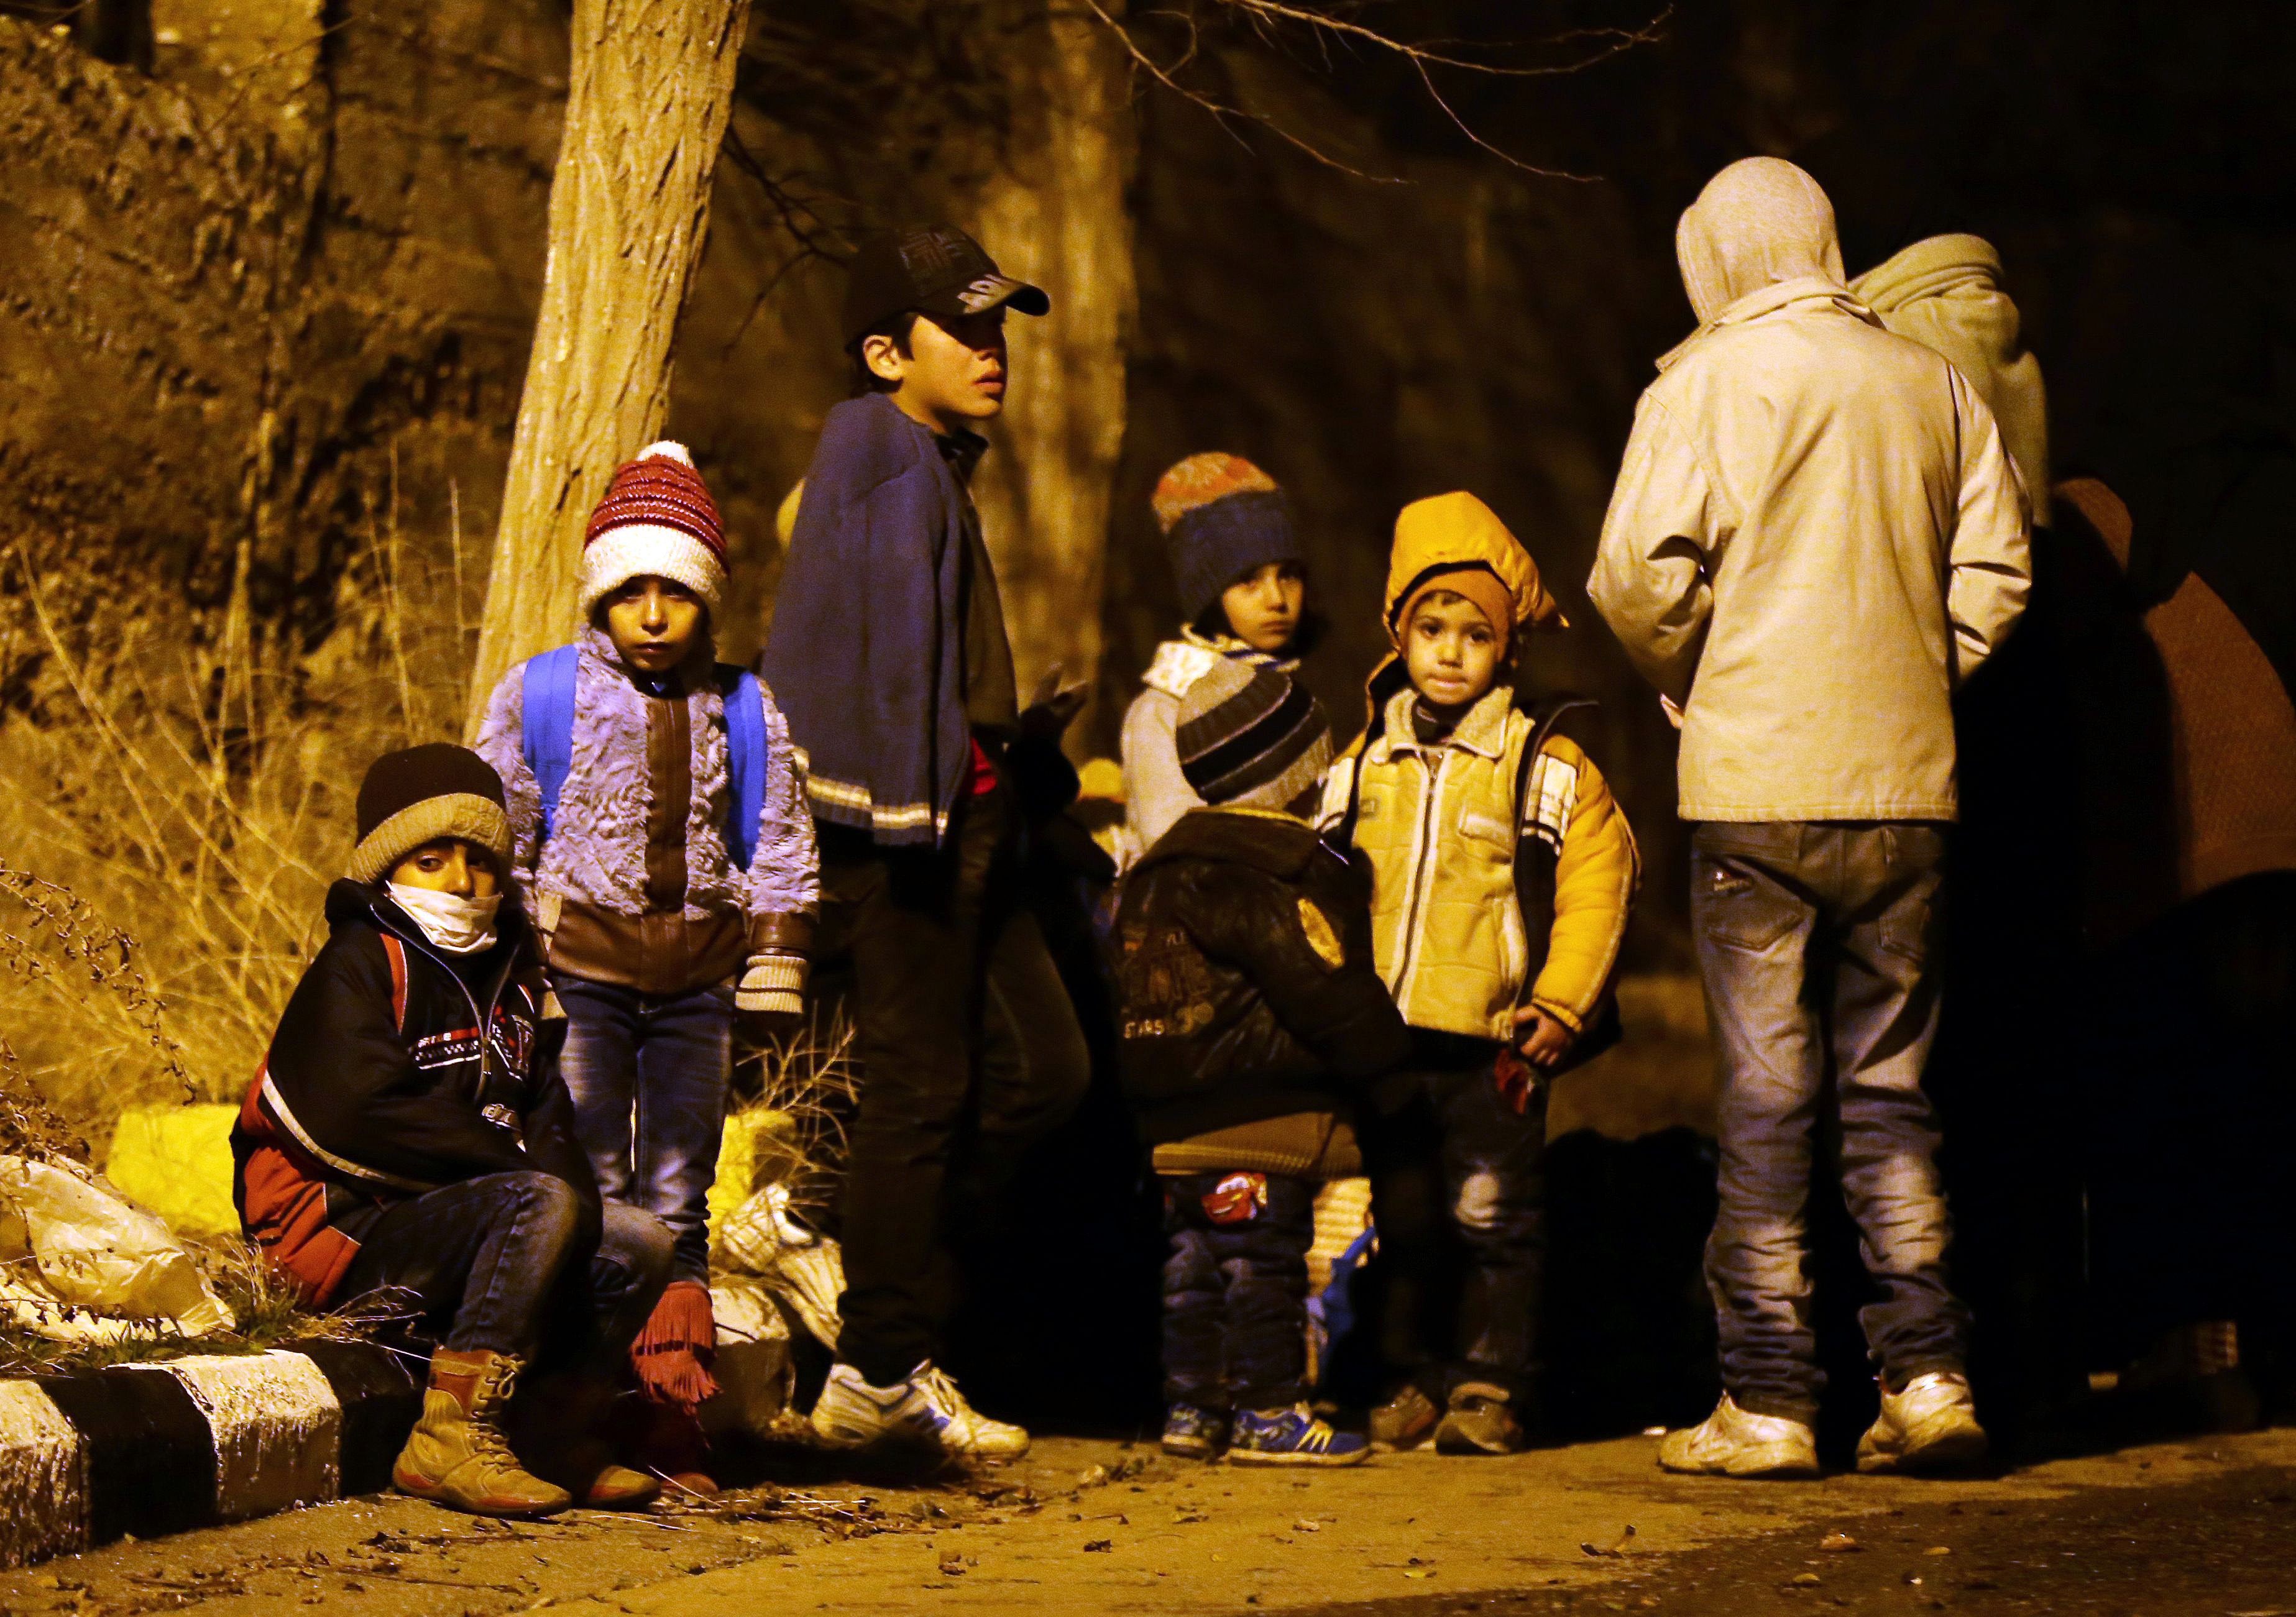 Syrian children wait on the outskirts of the besieged rebel-held Syrian town of Madaya, on January 11, 2016, after being evacuated from the town.